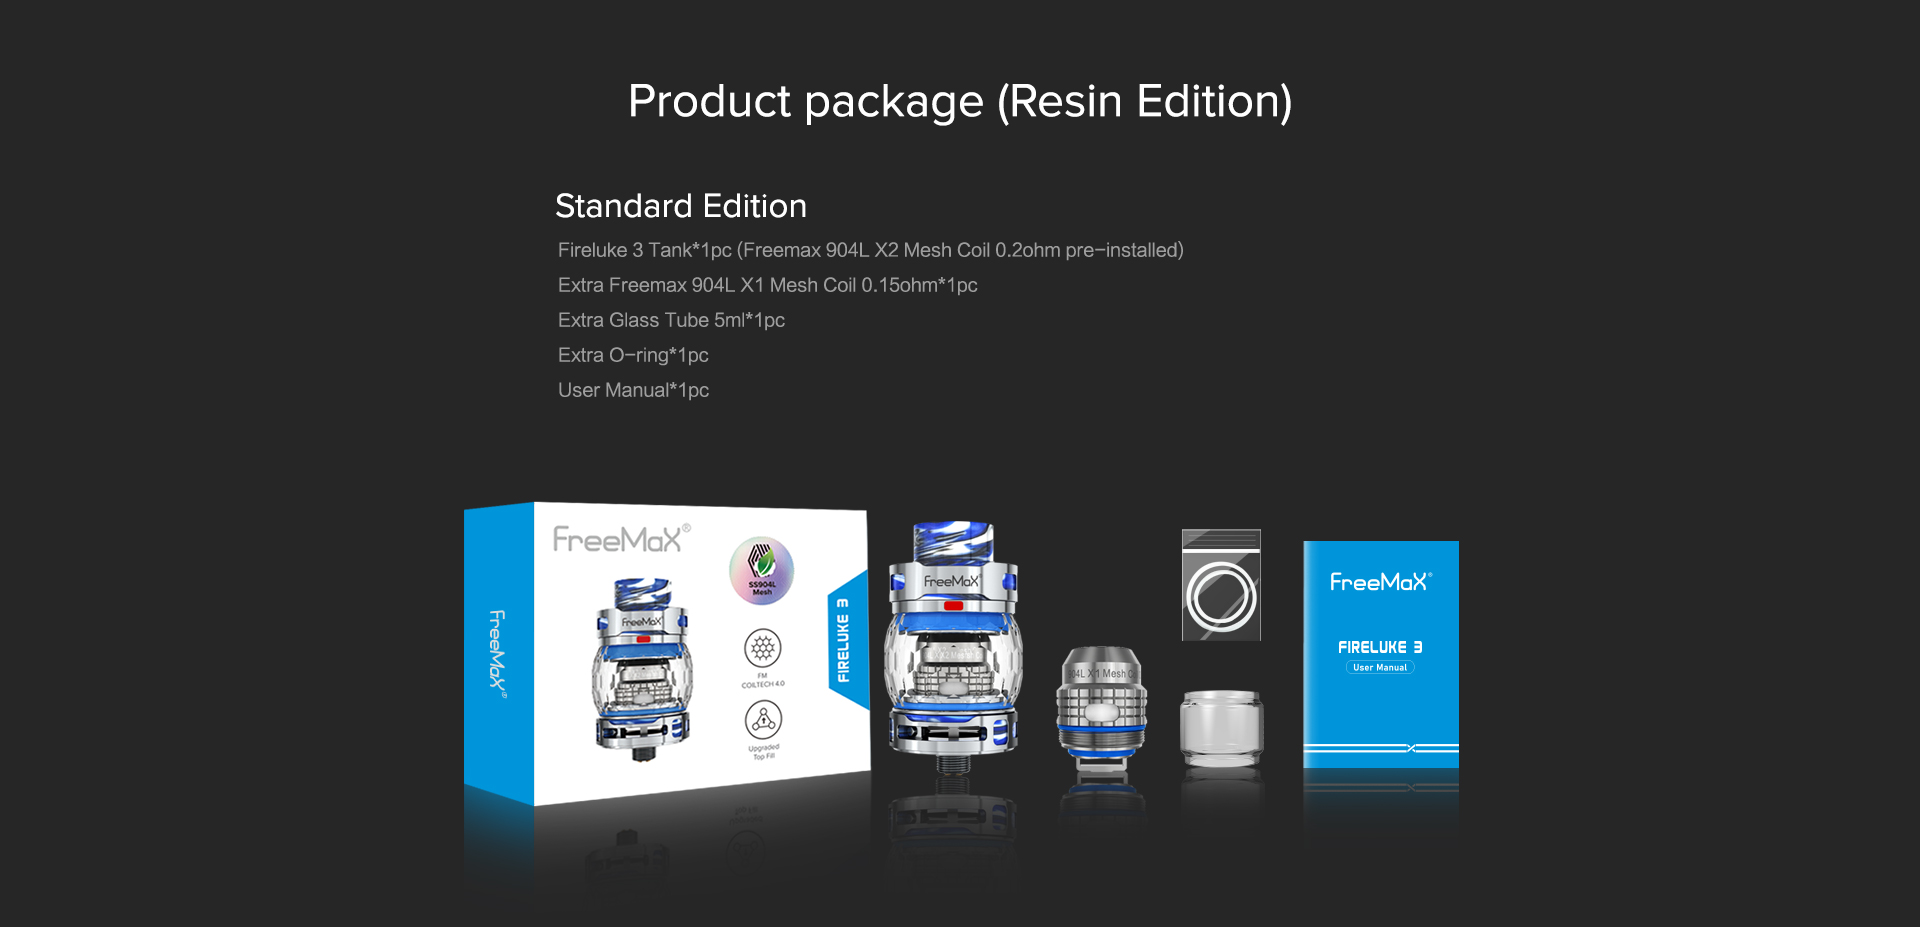 Fireluke 3 - Product package (Resin Edition) Standard Edition